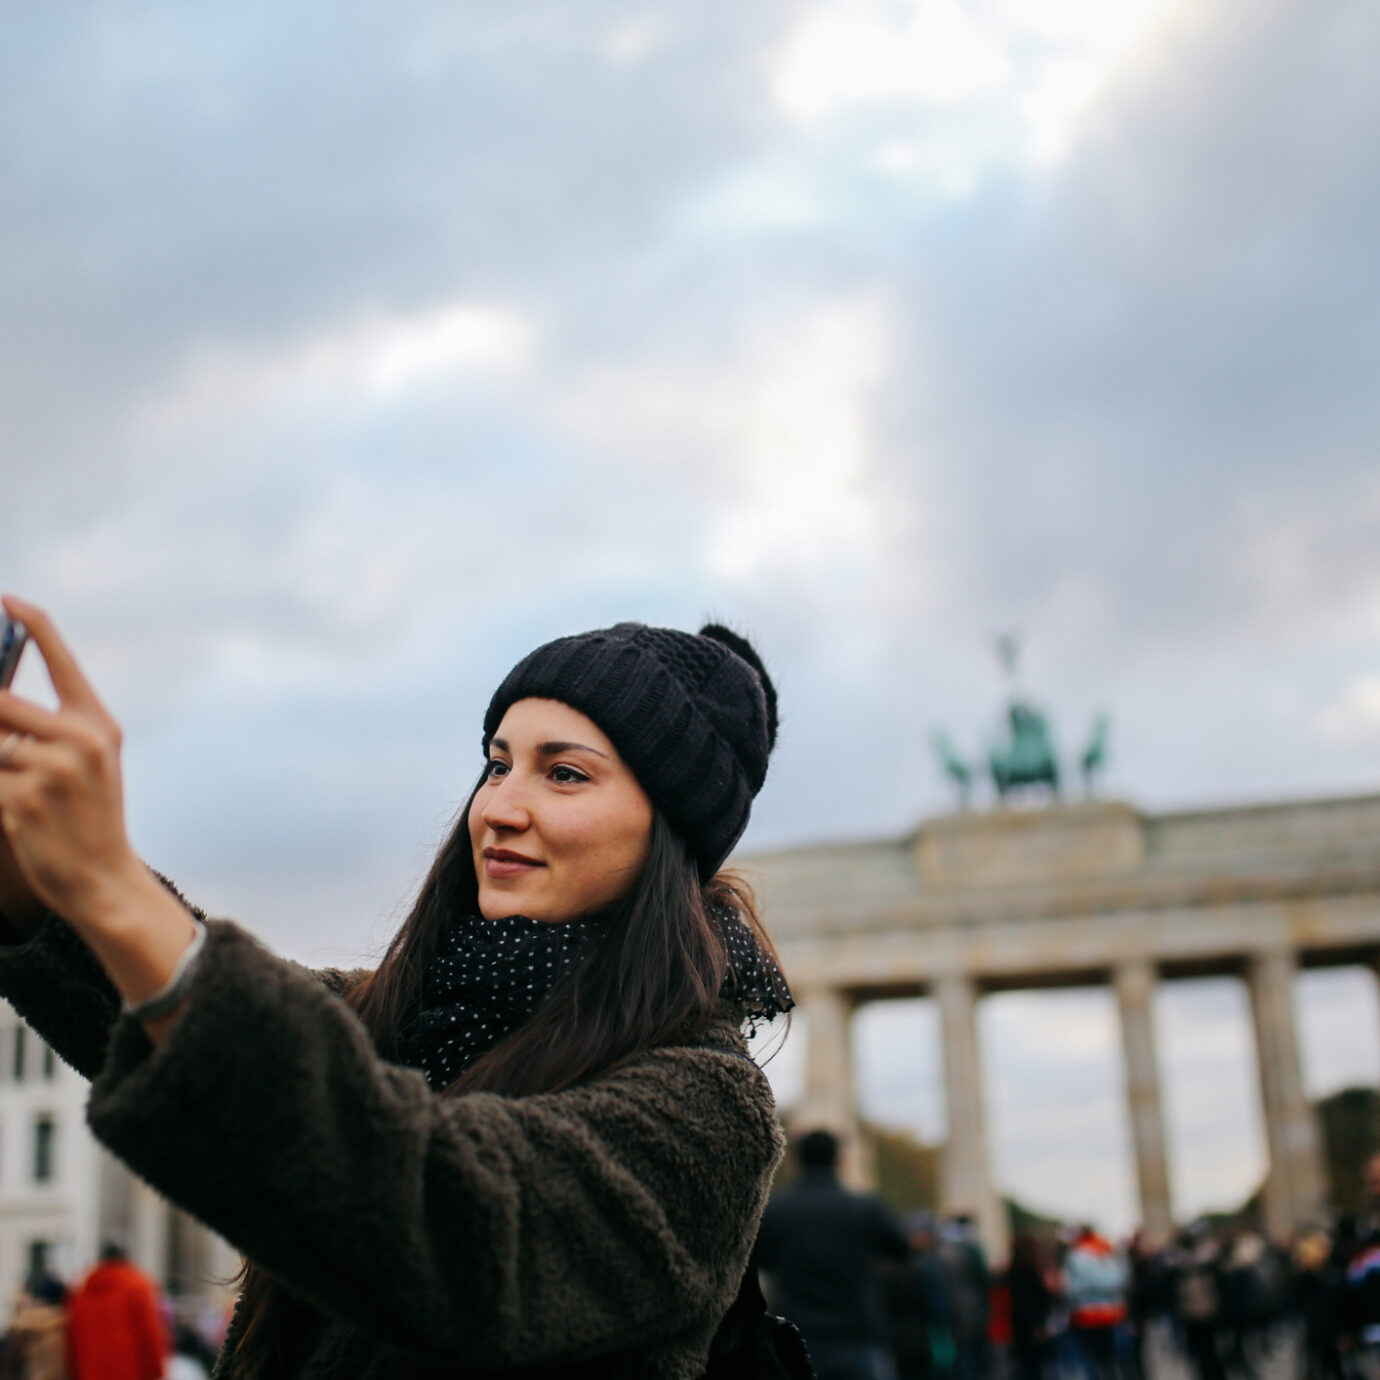 Portrait of a young tourist woman wearing casual clothing, sightseeing, taking selfie images in Berlin Mitte near Brandenburg Gate